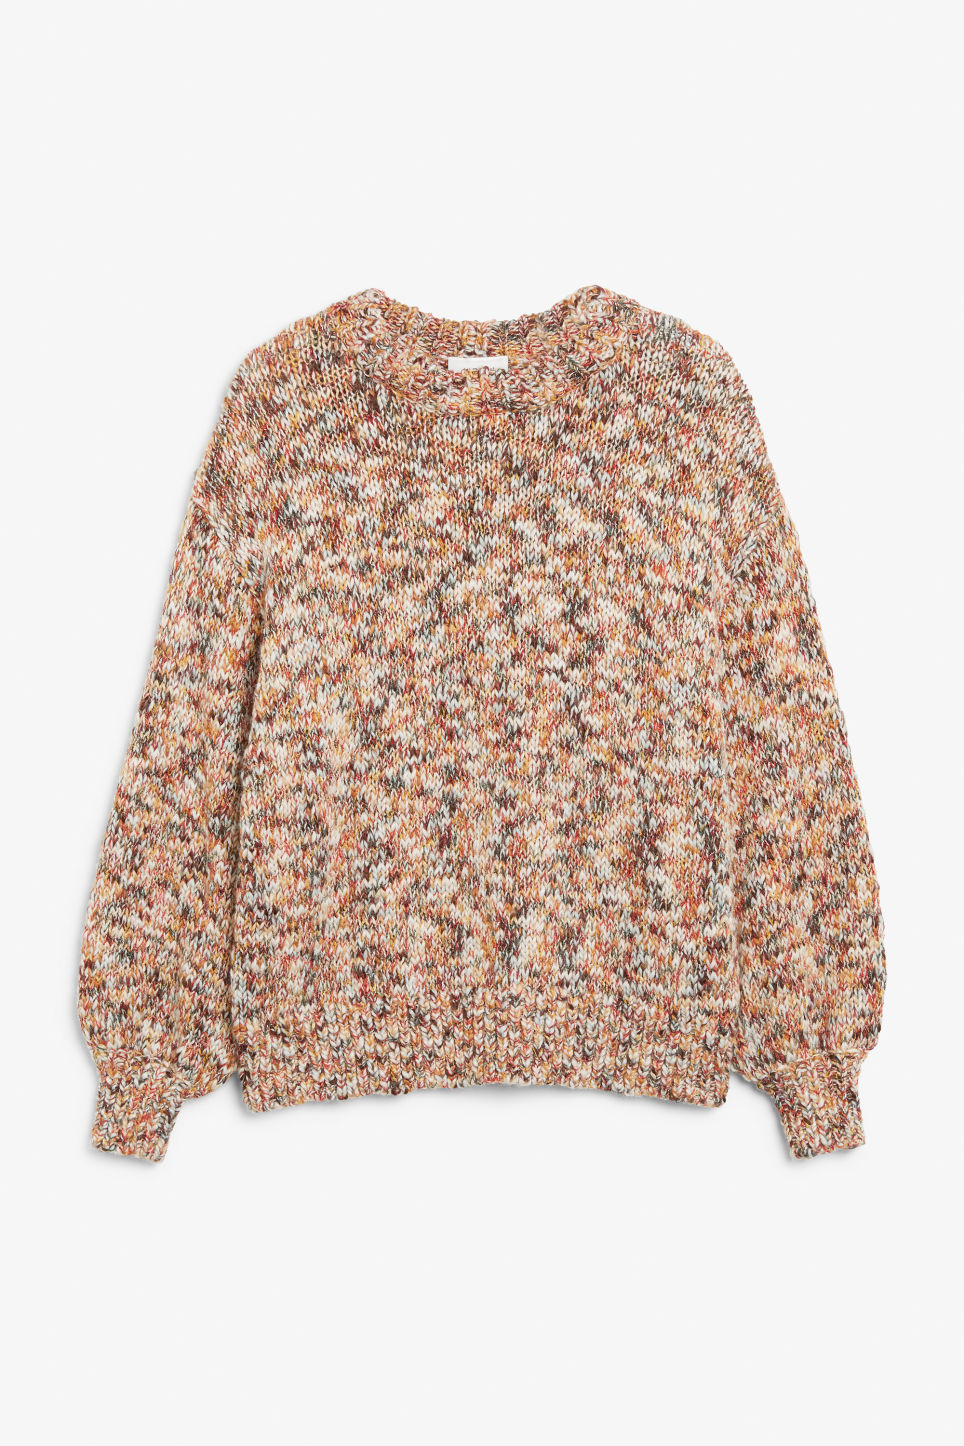 4a8311ab Chunky knit sweater - Multi colour - Knitwear - Monki